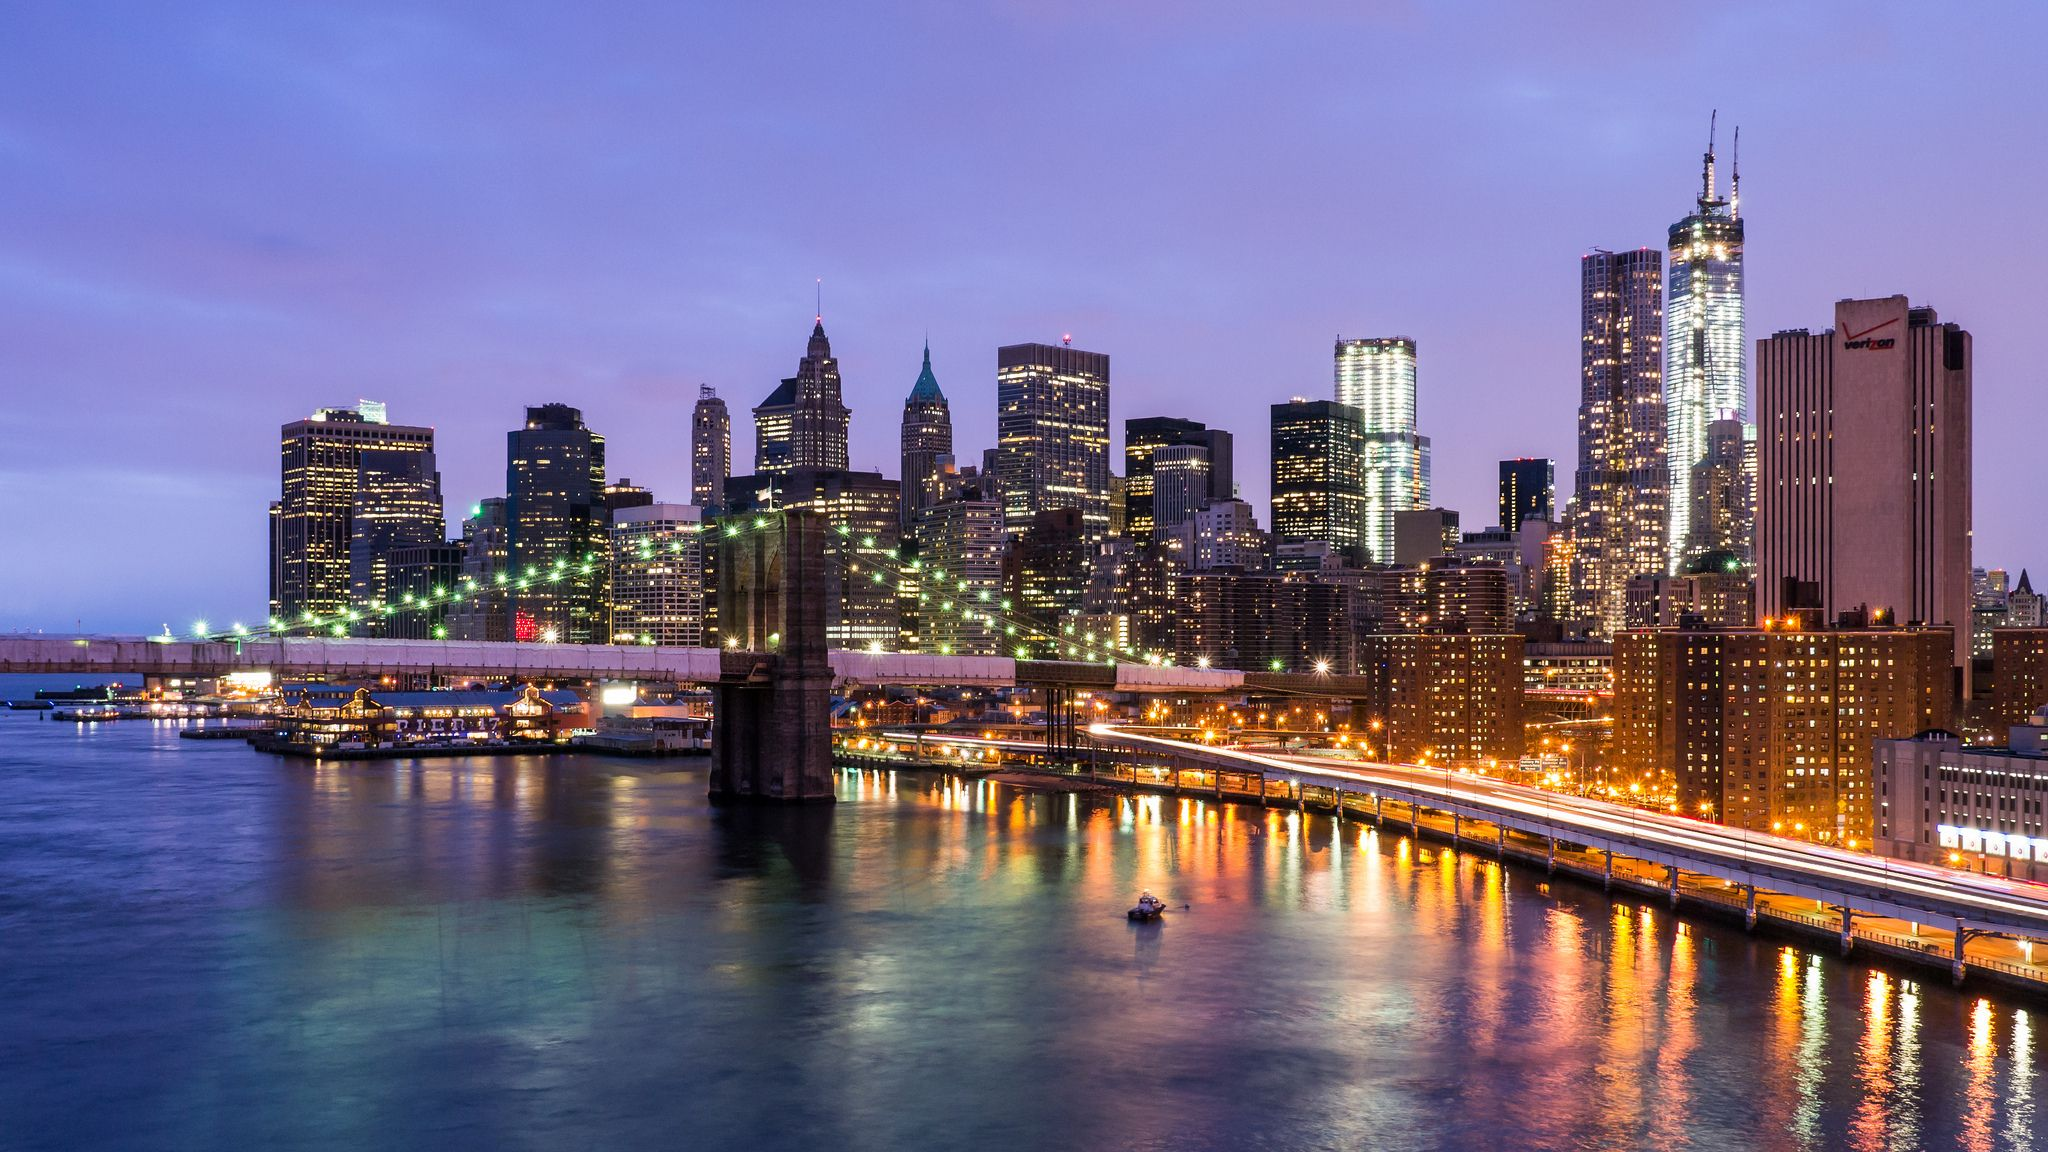 New York City Desktop Wallpapers Top Free New York City Desktop Backgrounds Wallpaperaccess